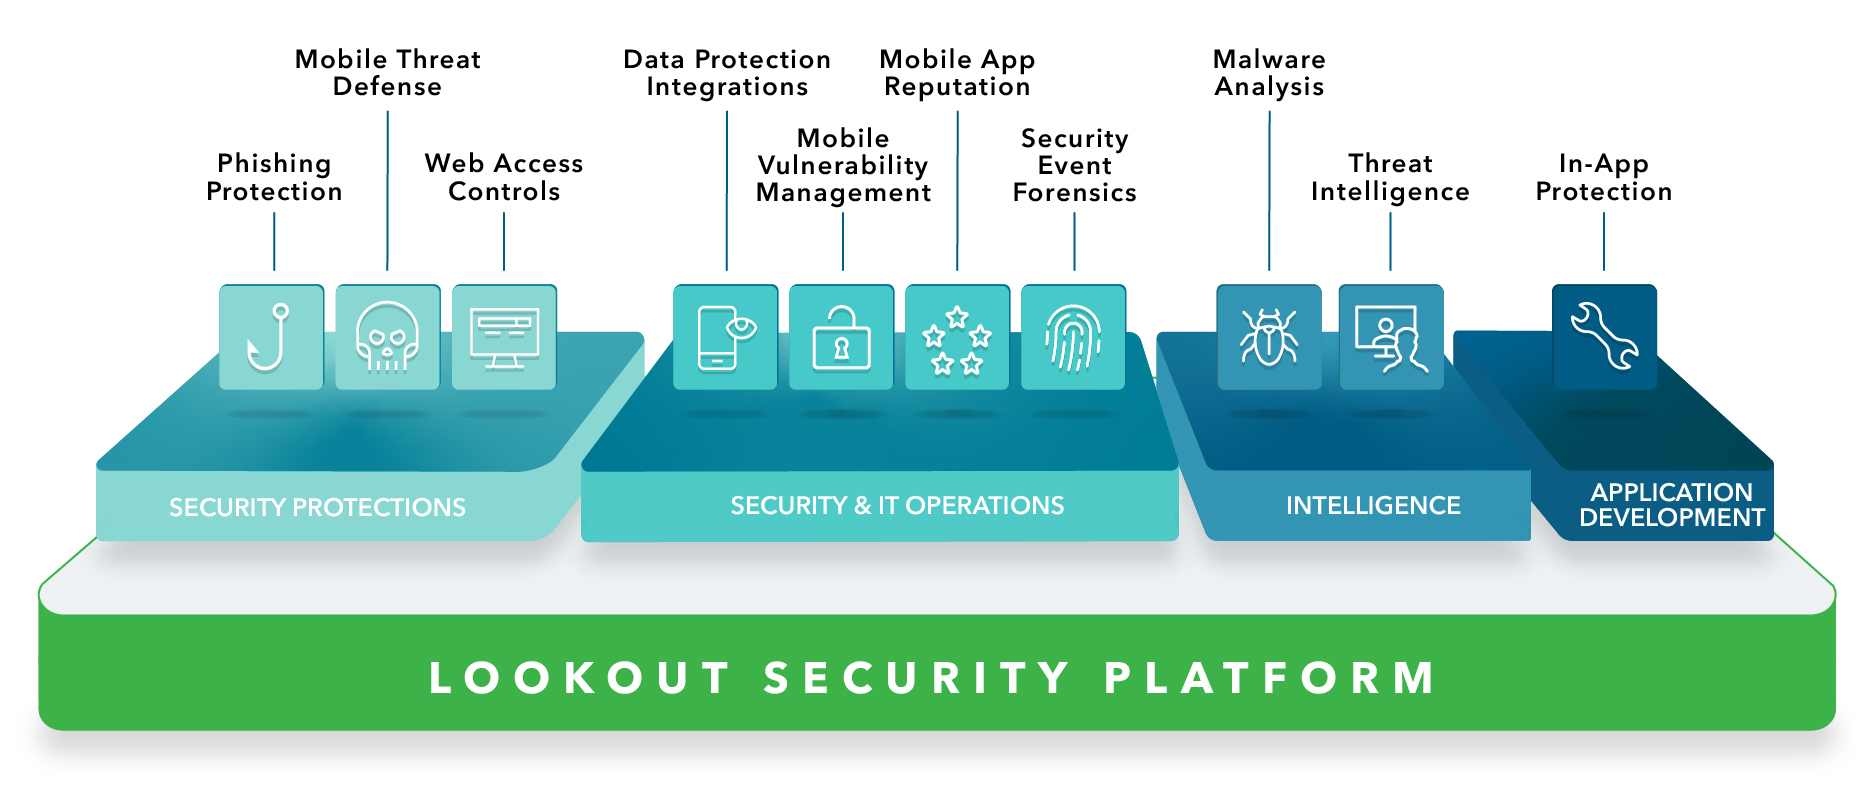 Image of the Lookout Security Cloud Platform